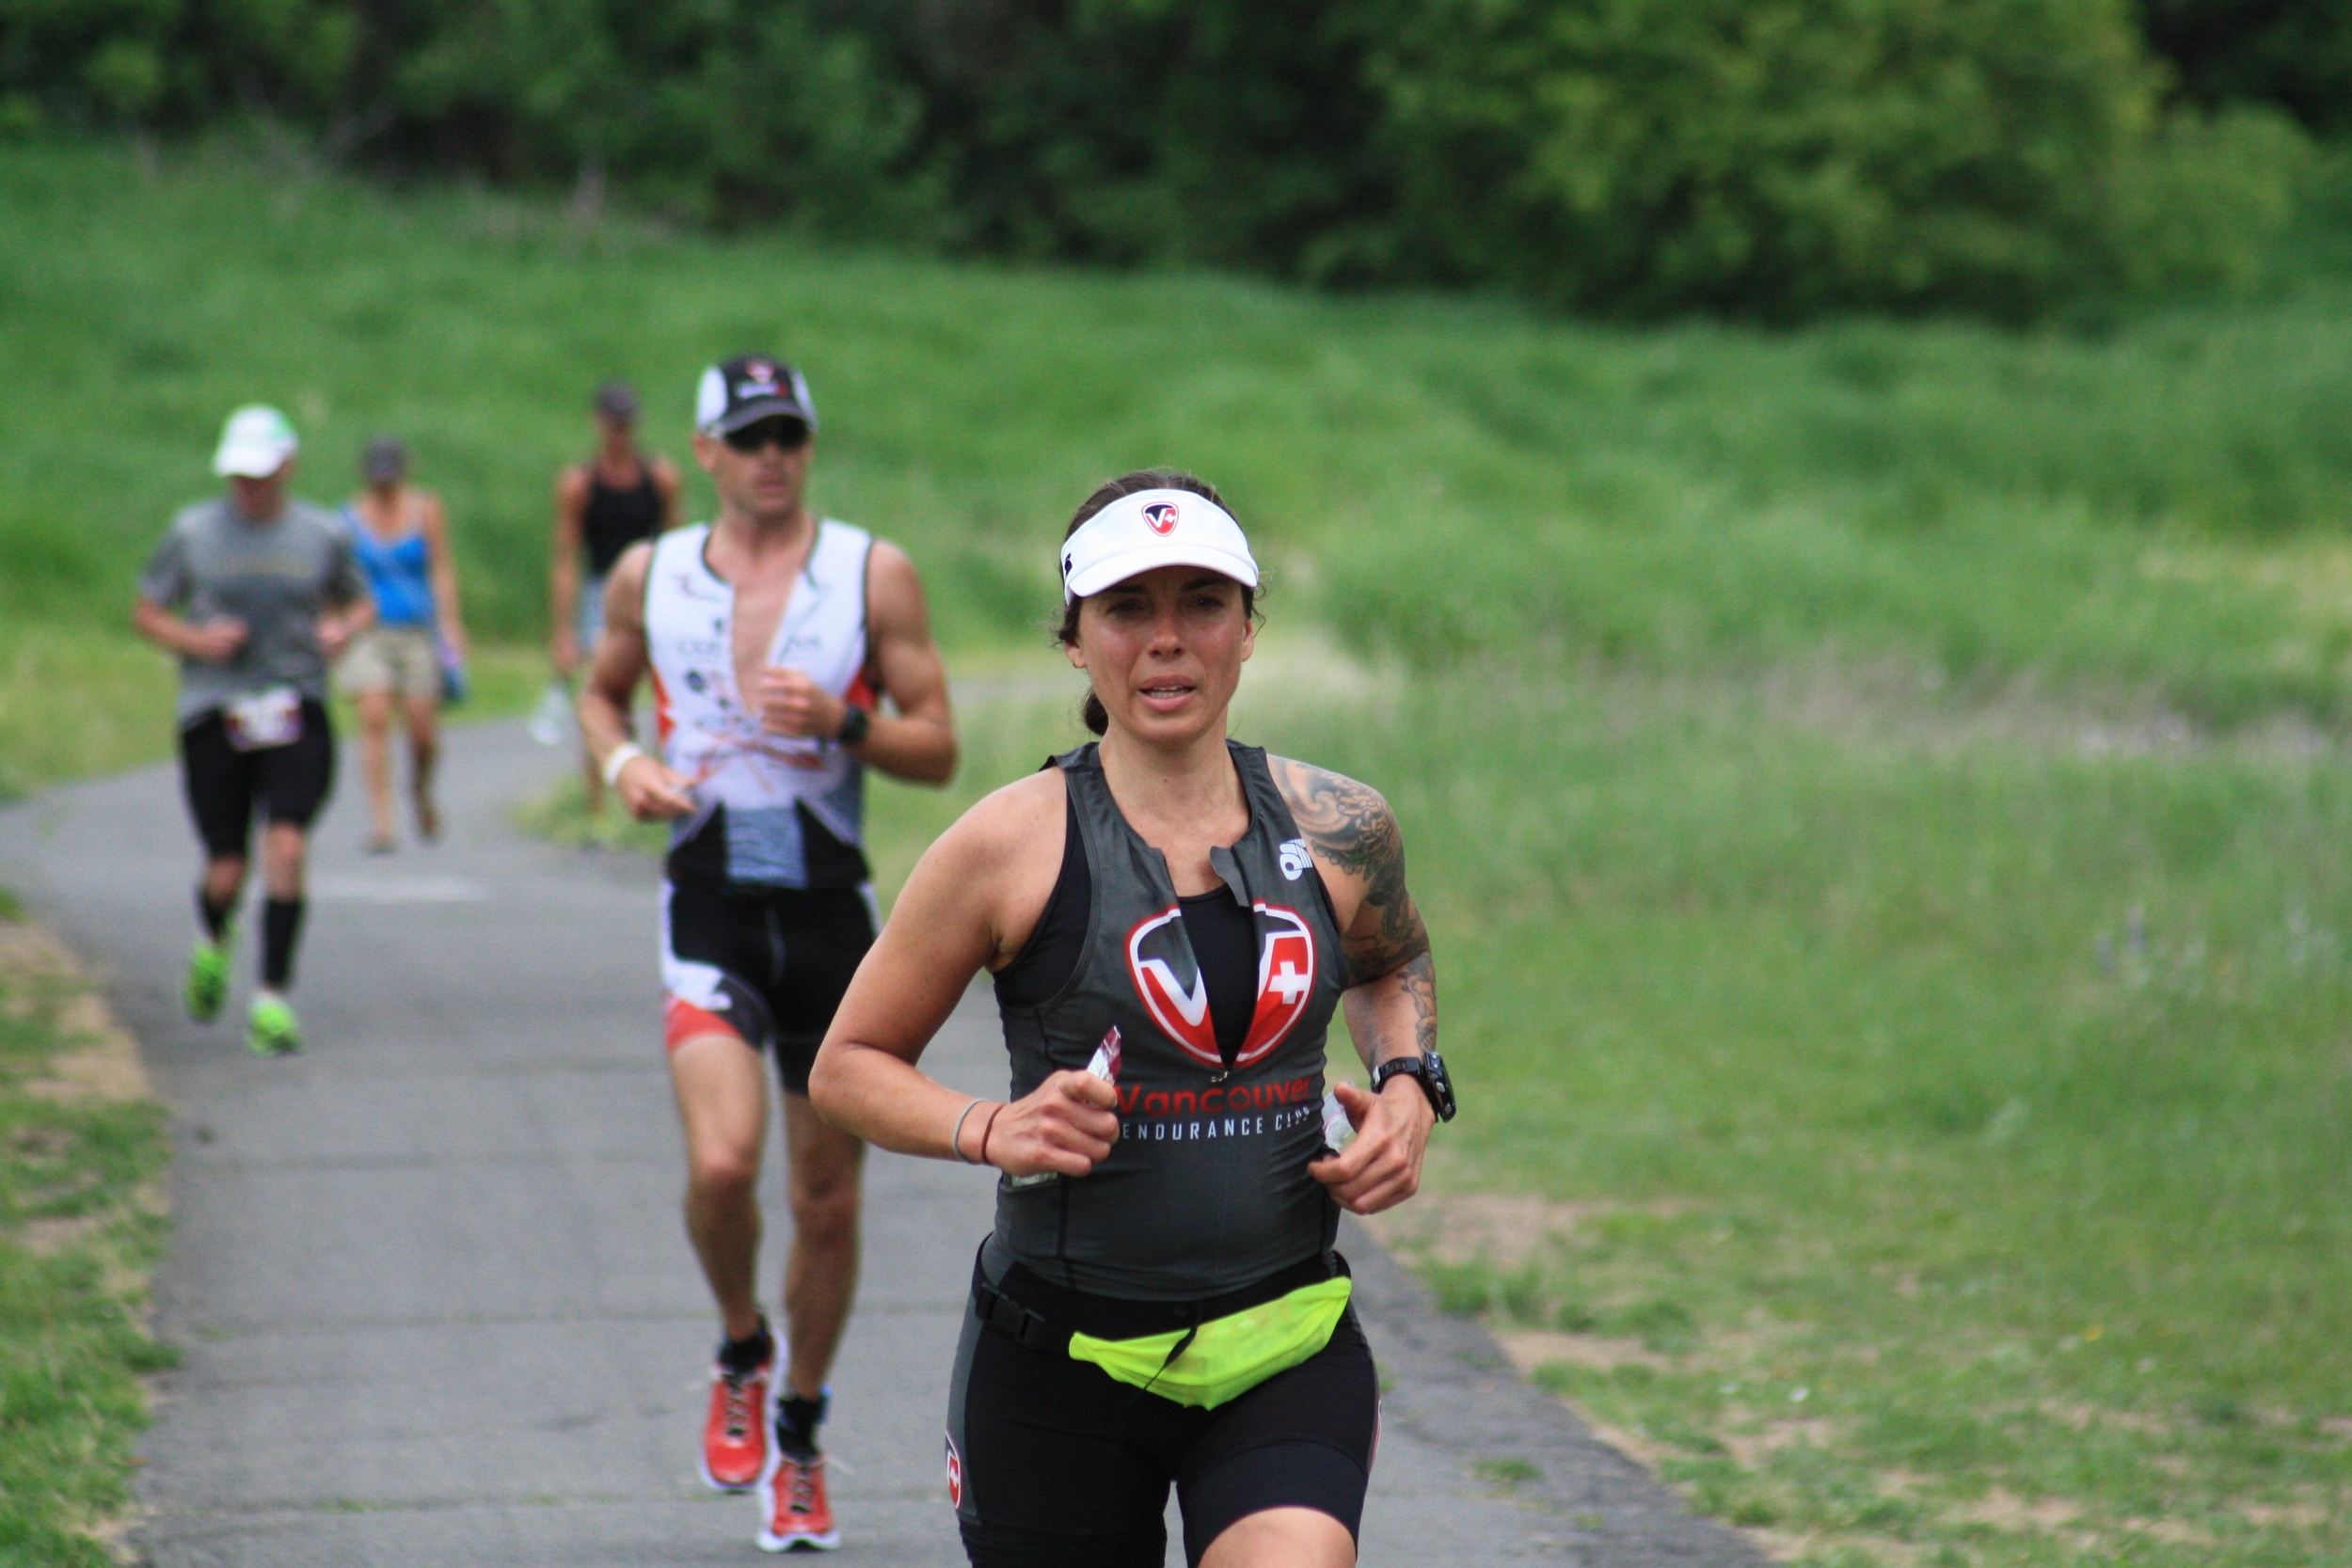 A quiet spot on the run course of a half-Ironman in Spokane, Washington. It's great to show up in these spots because you get to lift the athletes where they otherwise wouldn't get a boost. That's my friend Juliet in the picture, focused and laying it down on the run.